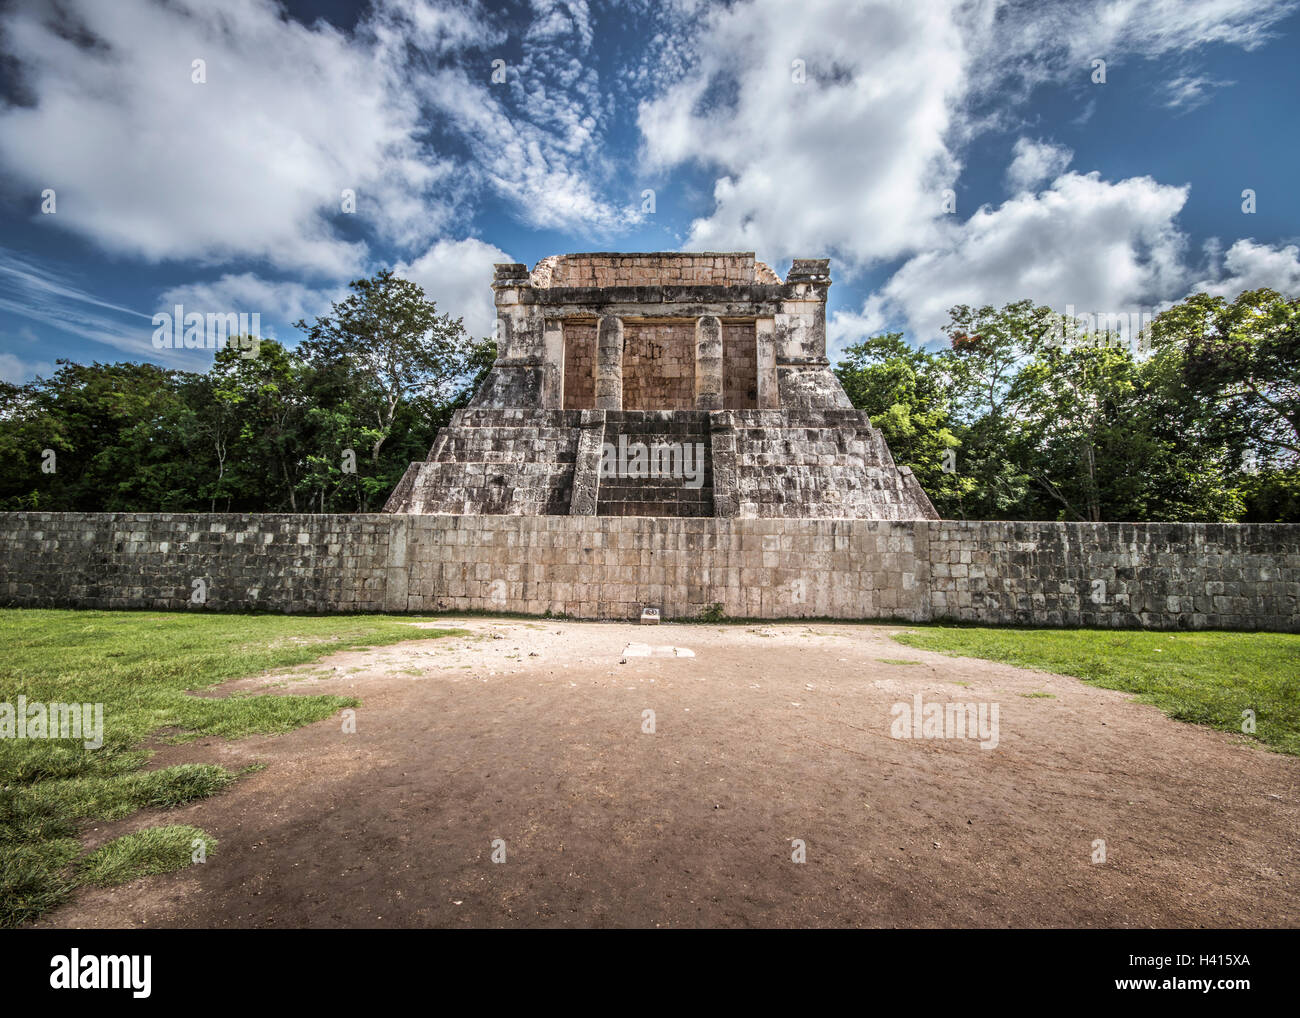 Tribune of the ball game in Chichen Itza (Mexico) - Stock Image